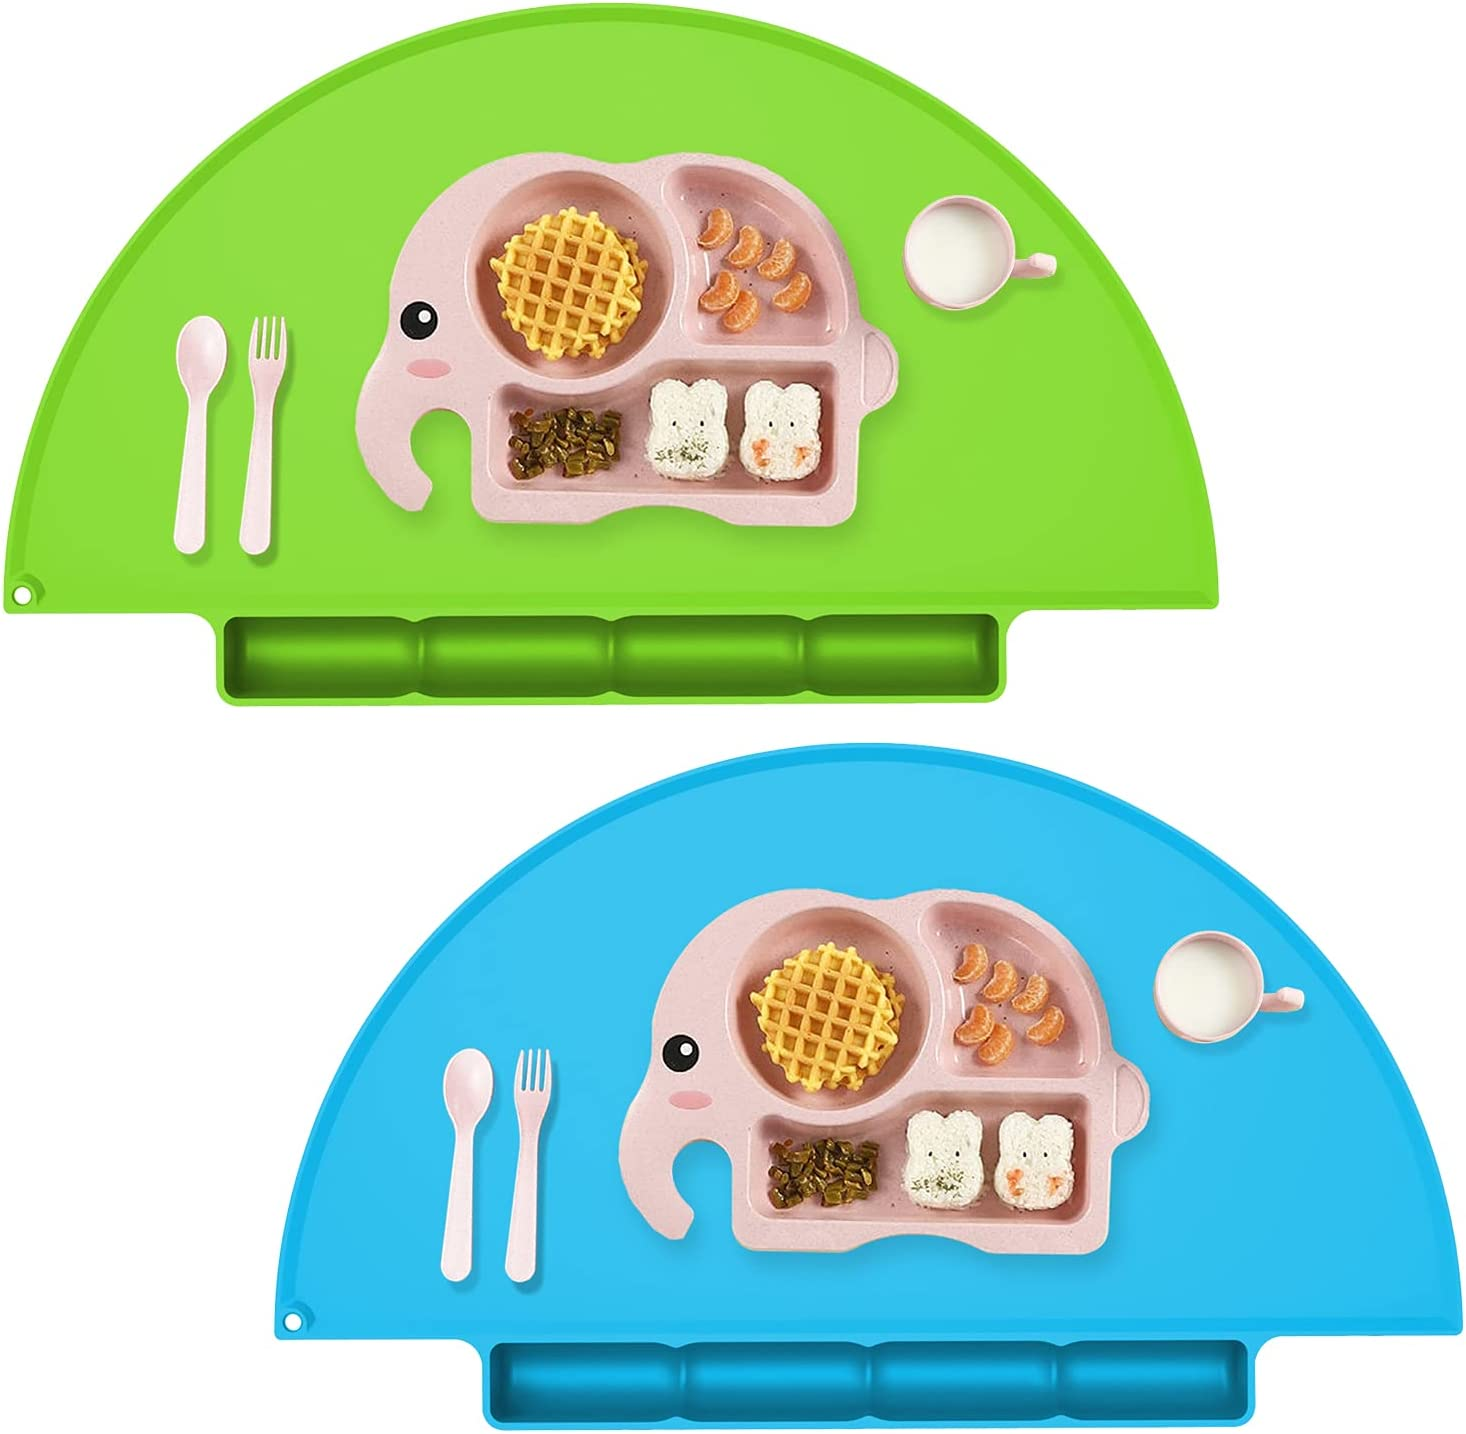 Kids Placemat with Food Catching Tray, Strong Suction Baby Placemats for Kids Toddler Children Reusable Non-Slip Table Mats, Baby Food Mats for Restaurant - 2Pack - Blue/Green